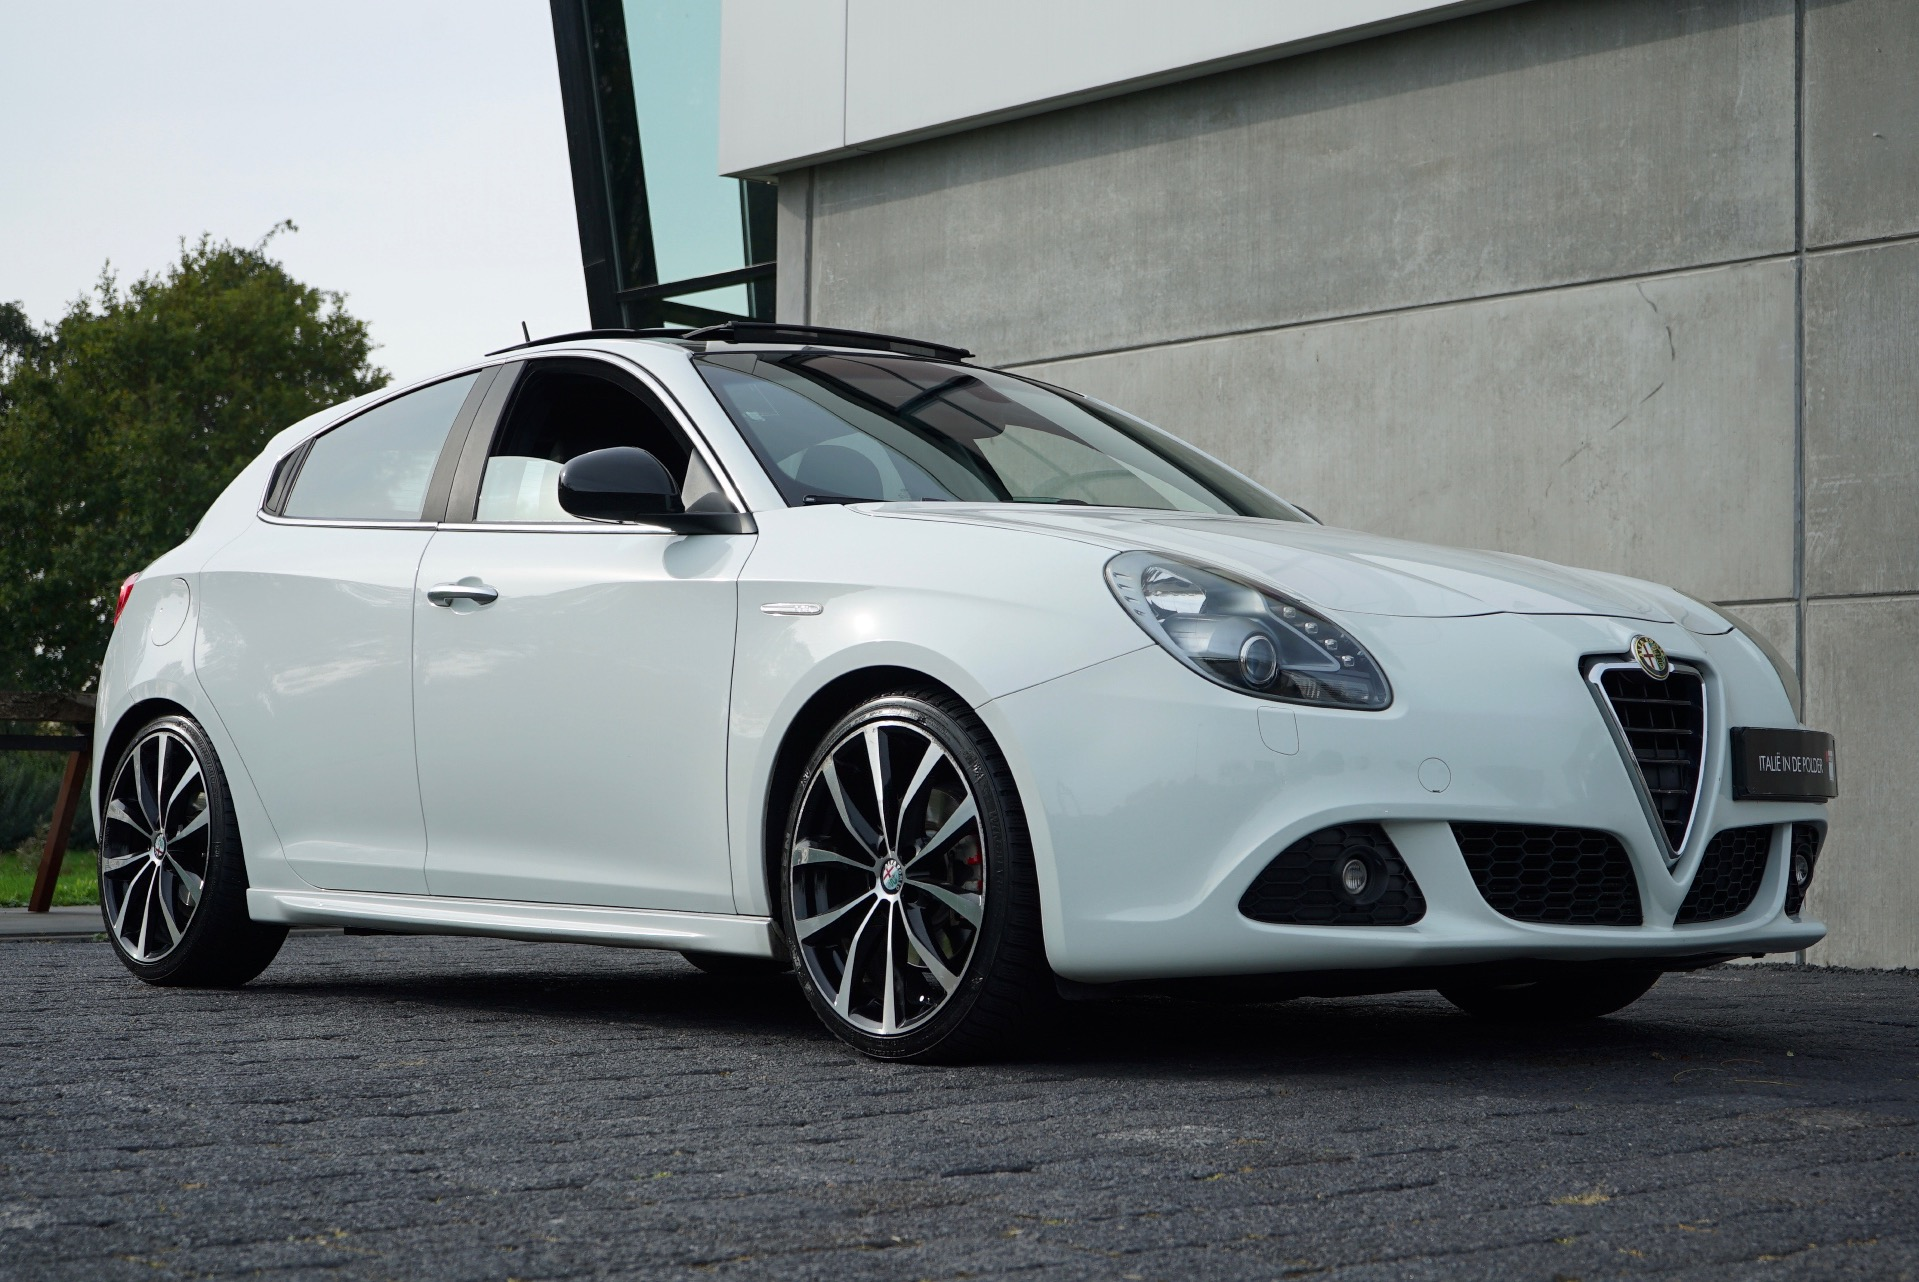 ALFA ROMEO GIULIETTA 1.4 TURBO M-AIR DISTINCTIVE